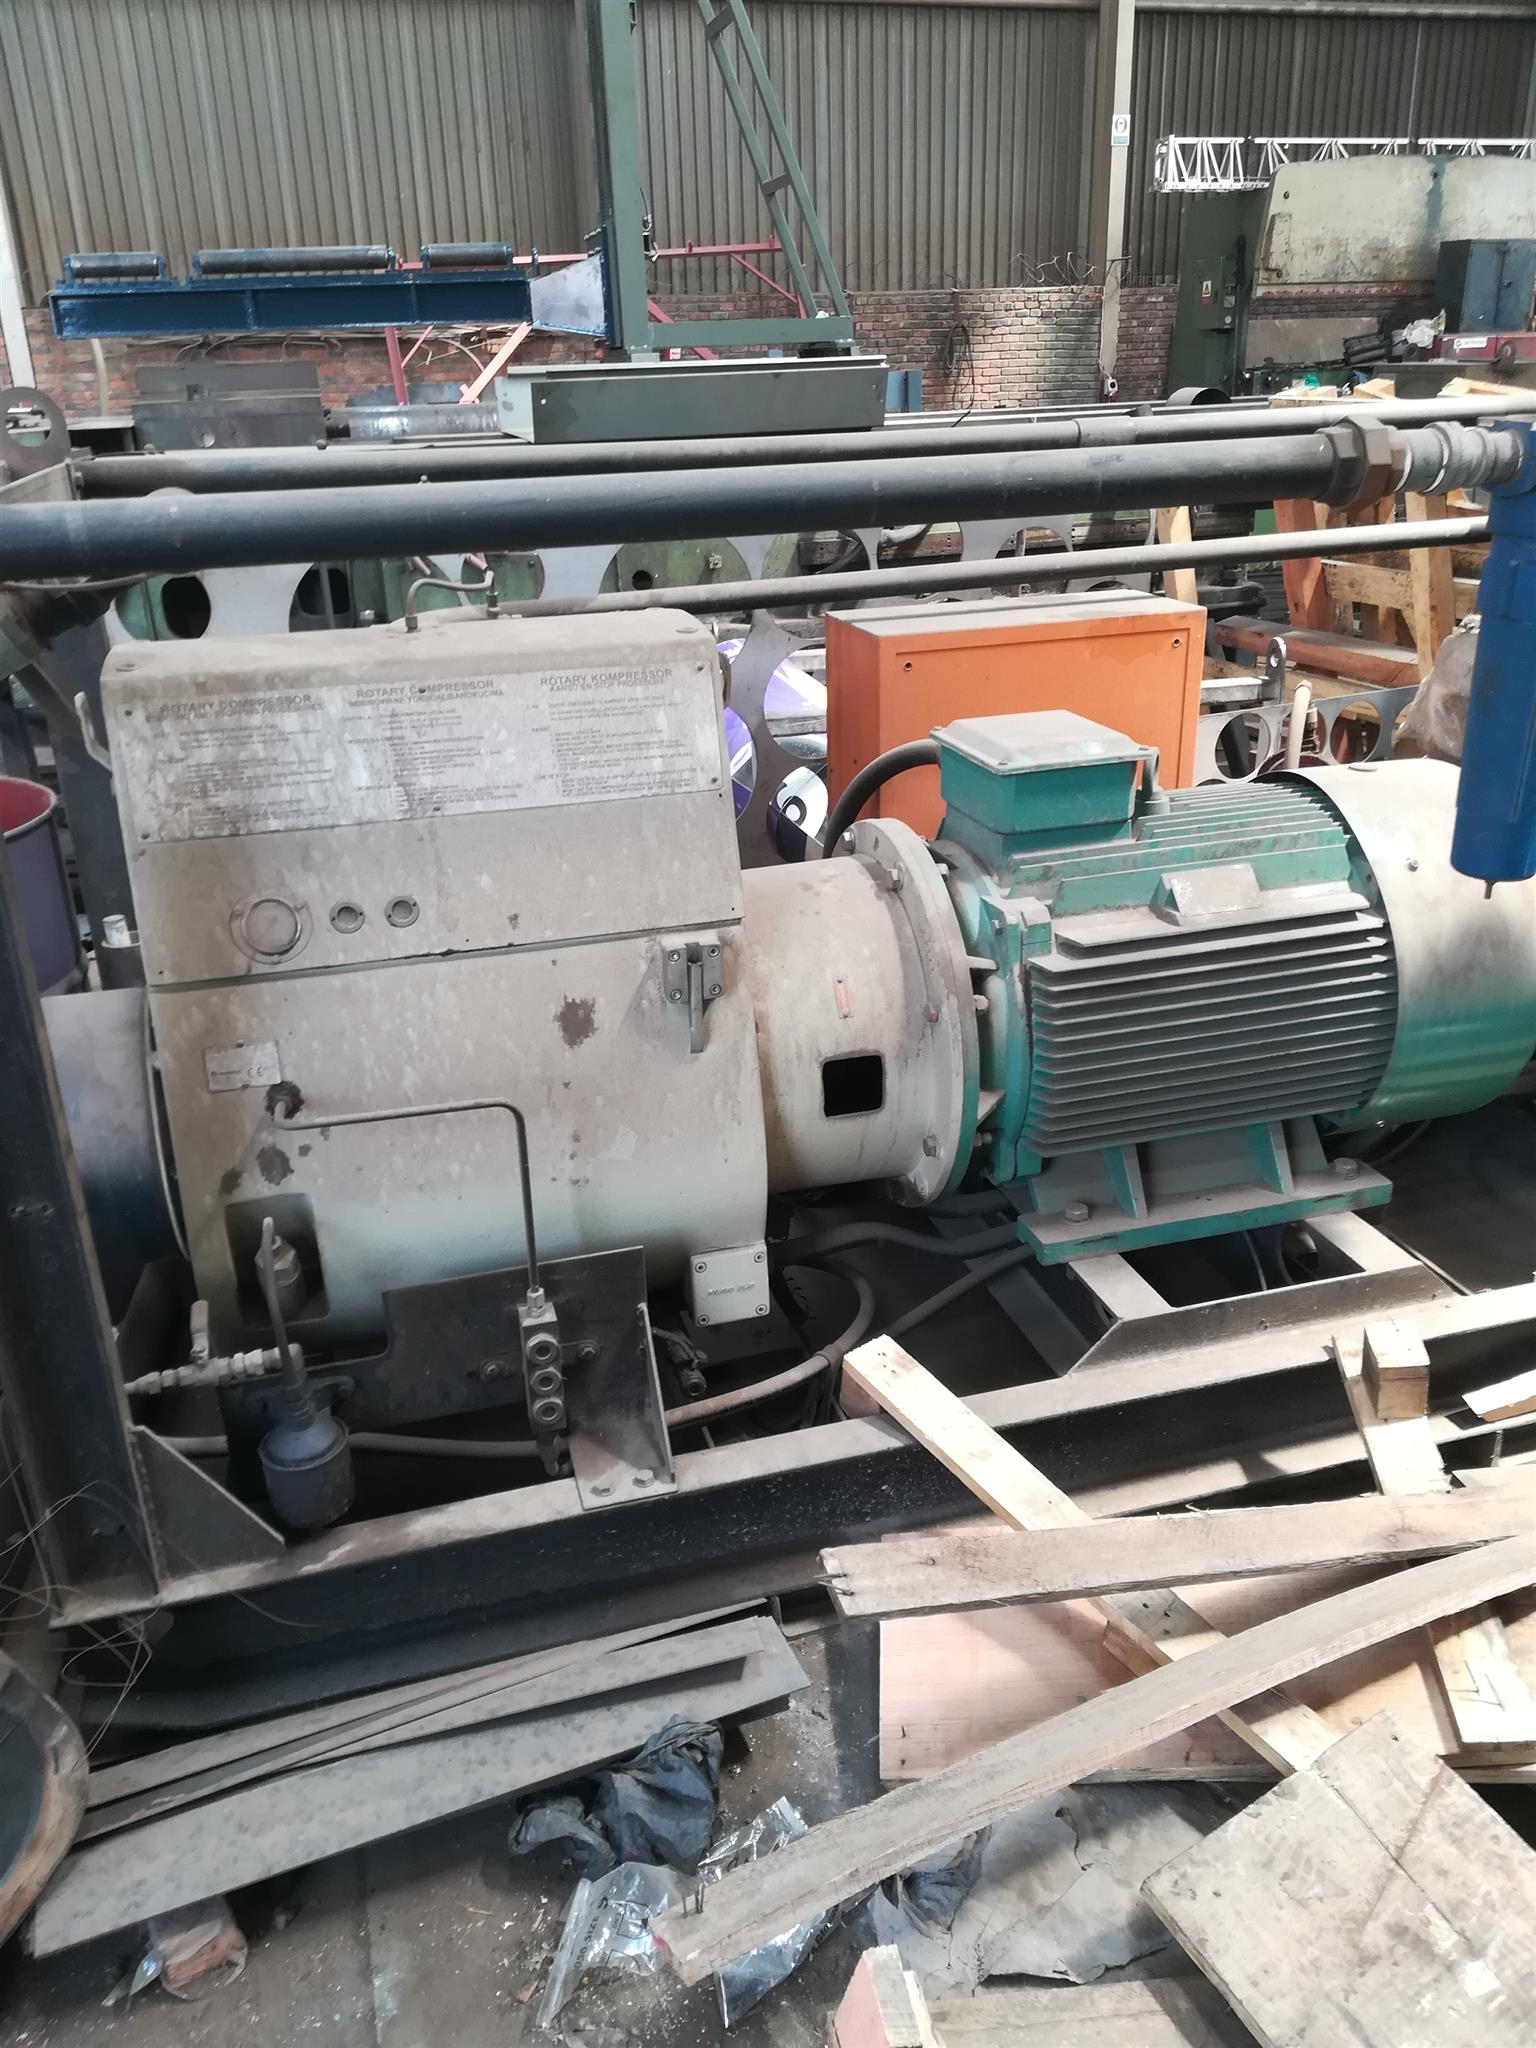 Mattei C450 rotary vane compressor for sale